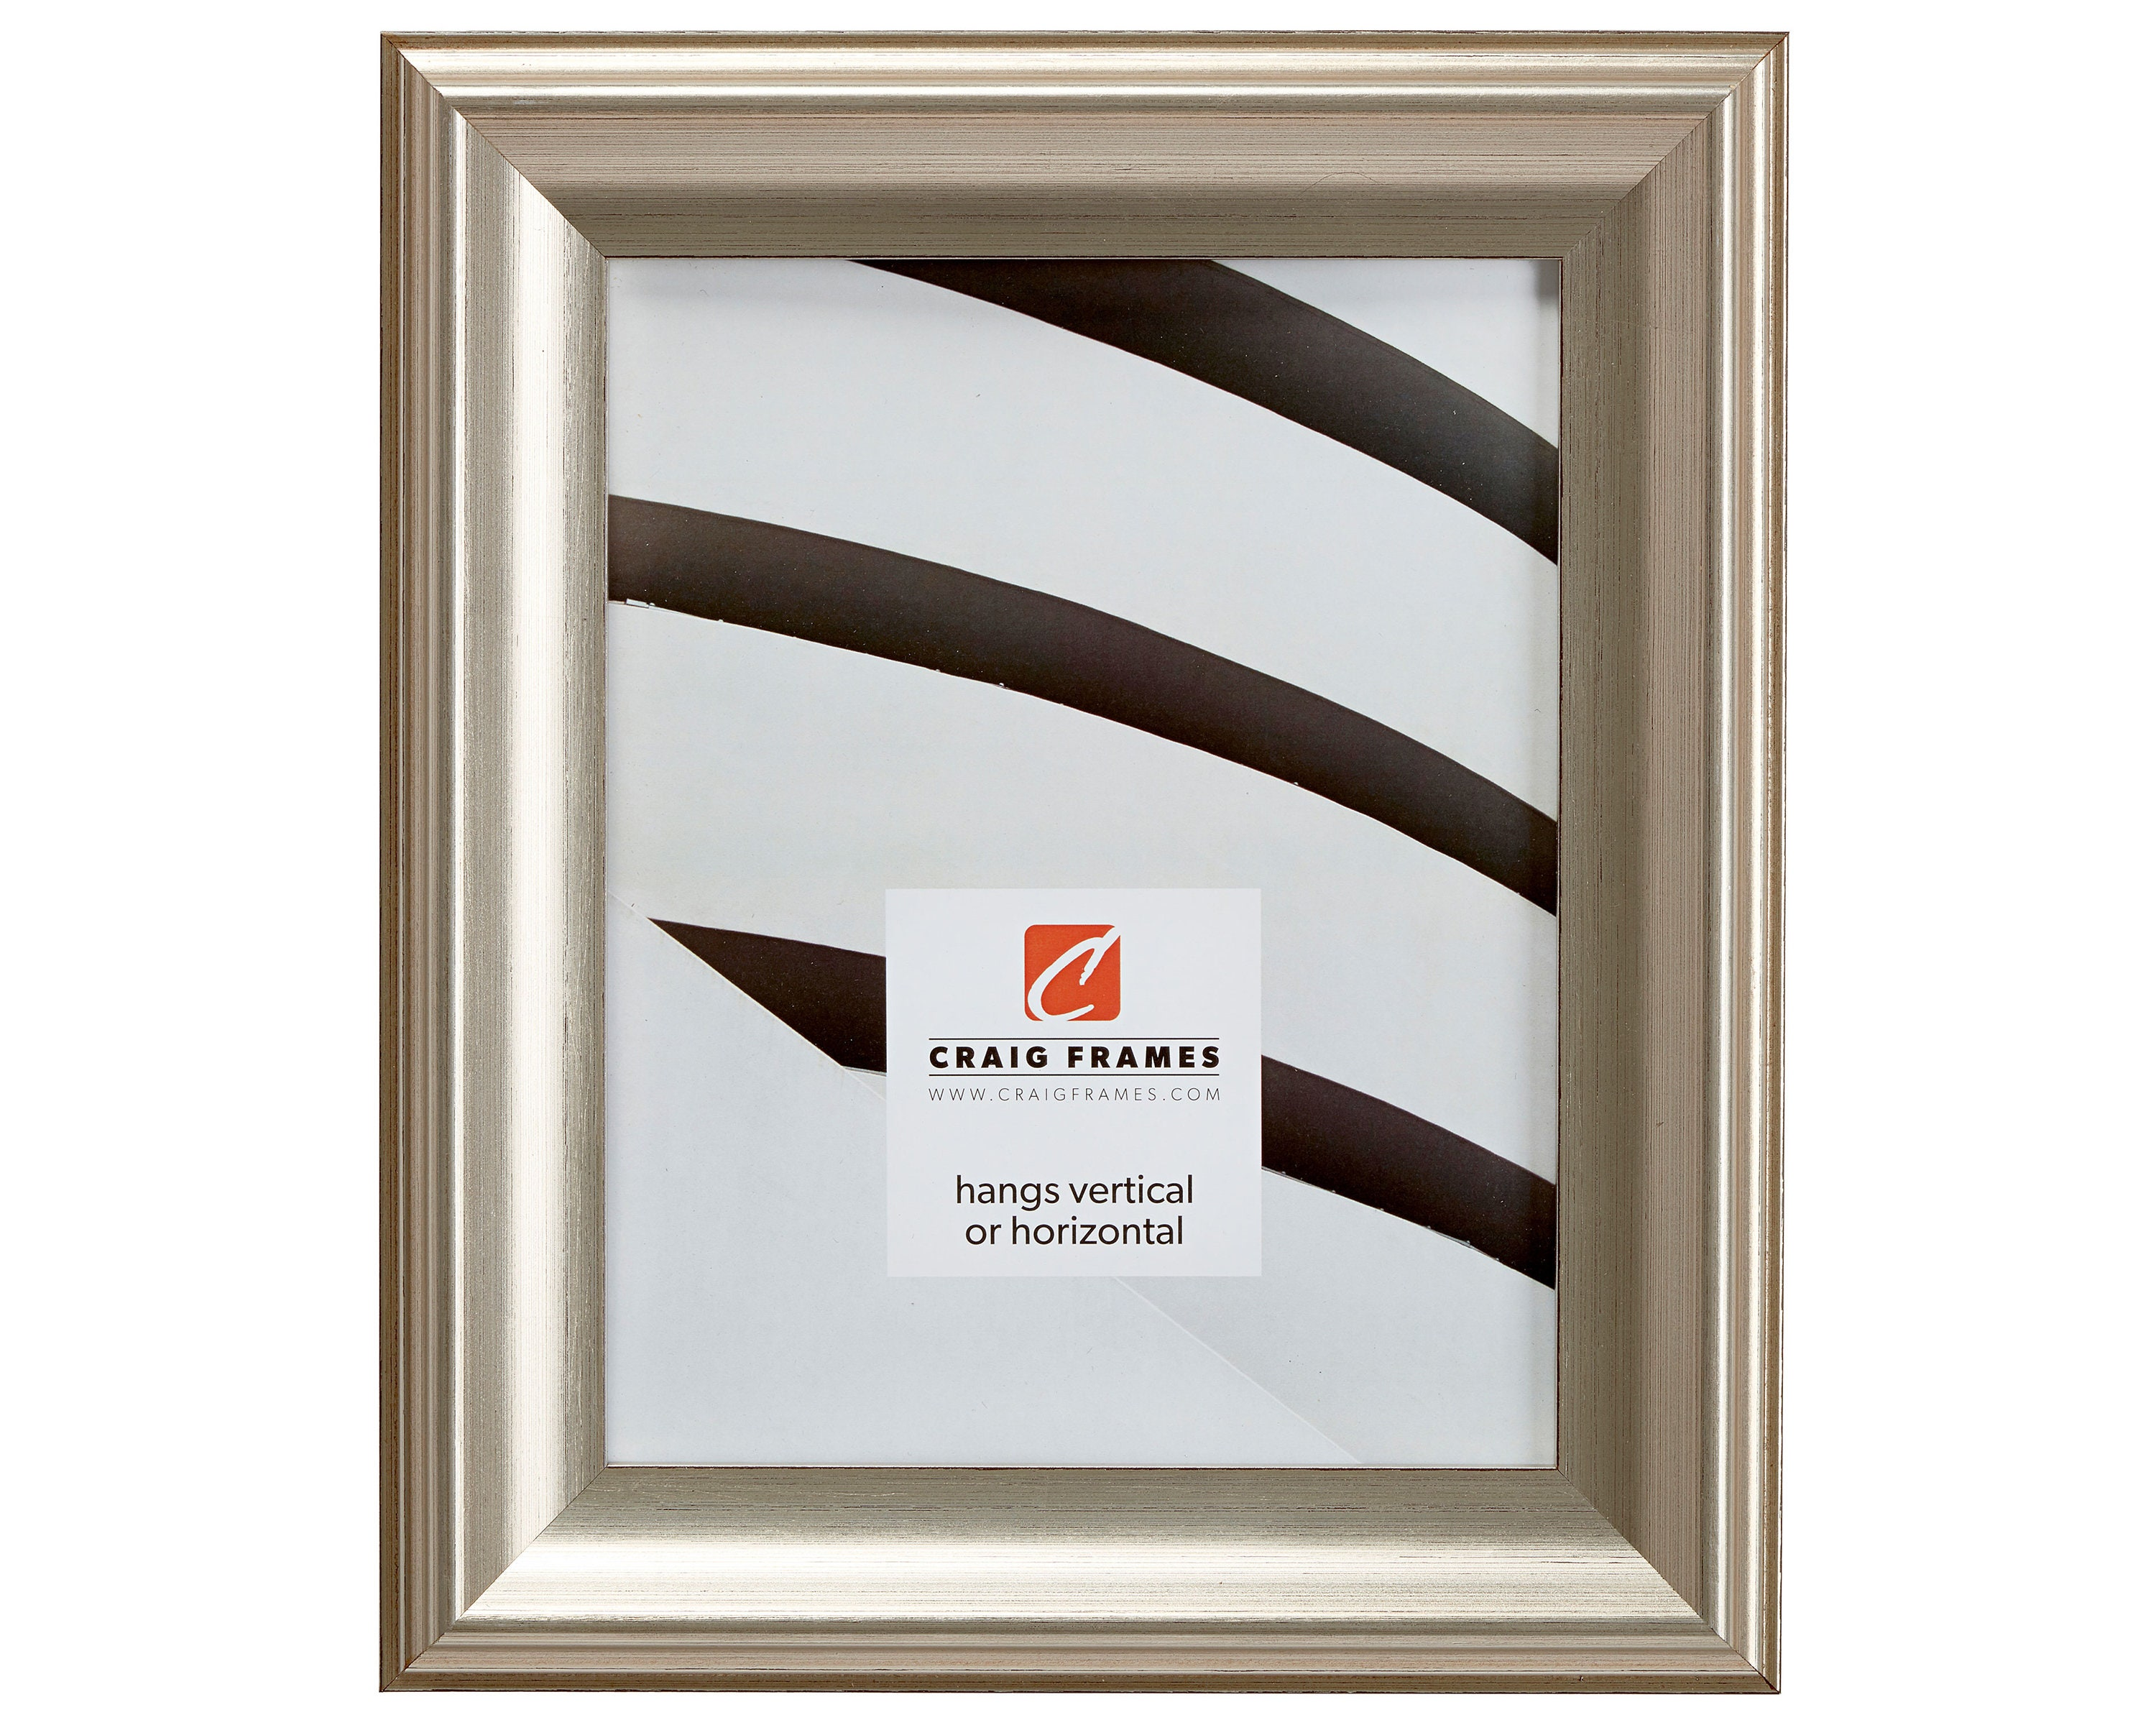 Amazing 10x13 Silver Picture Frames Illustration - Framed Art Ideas ...